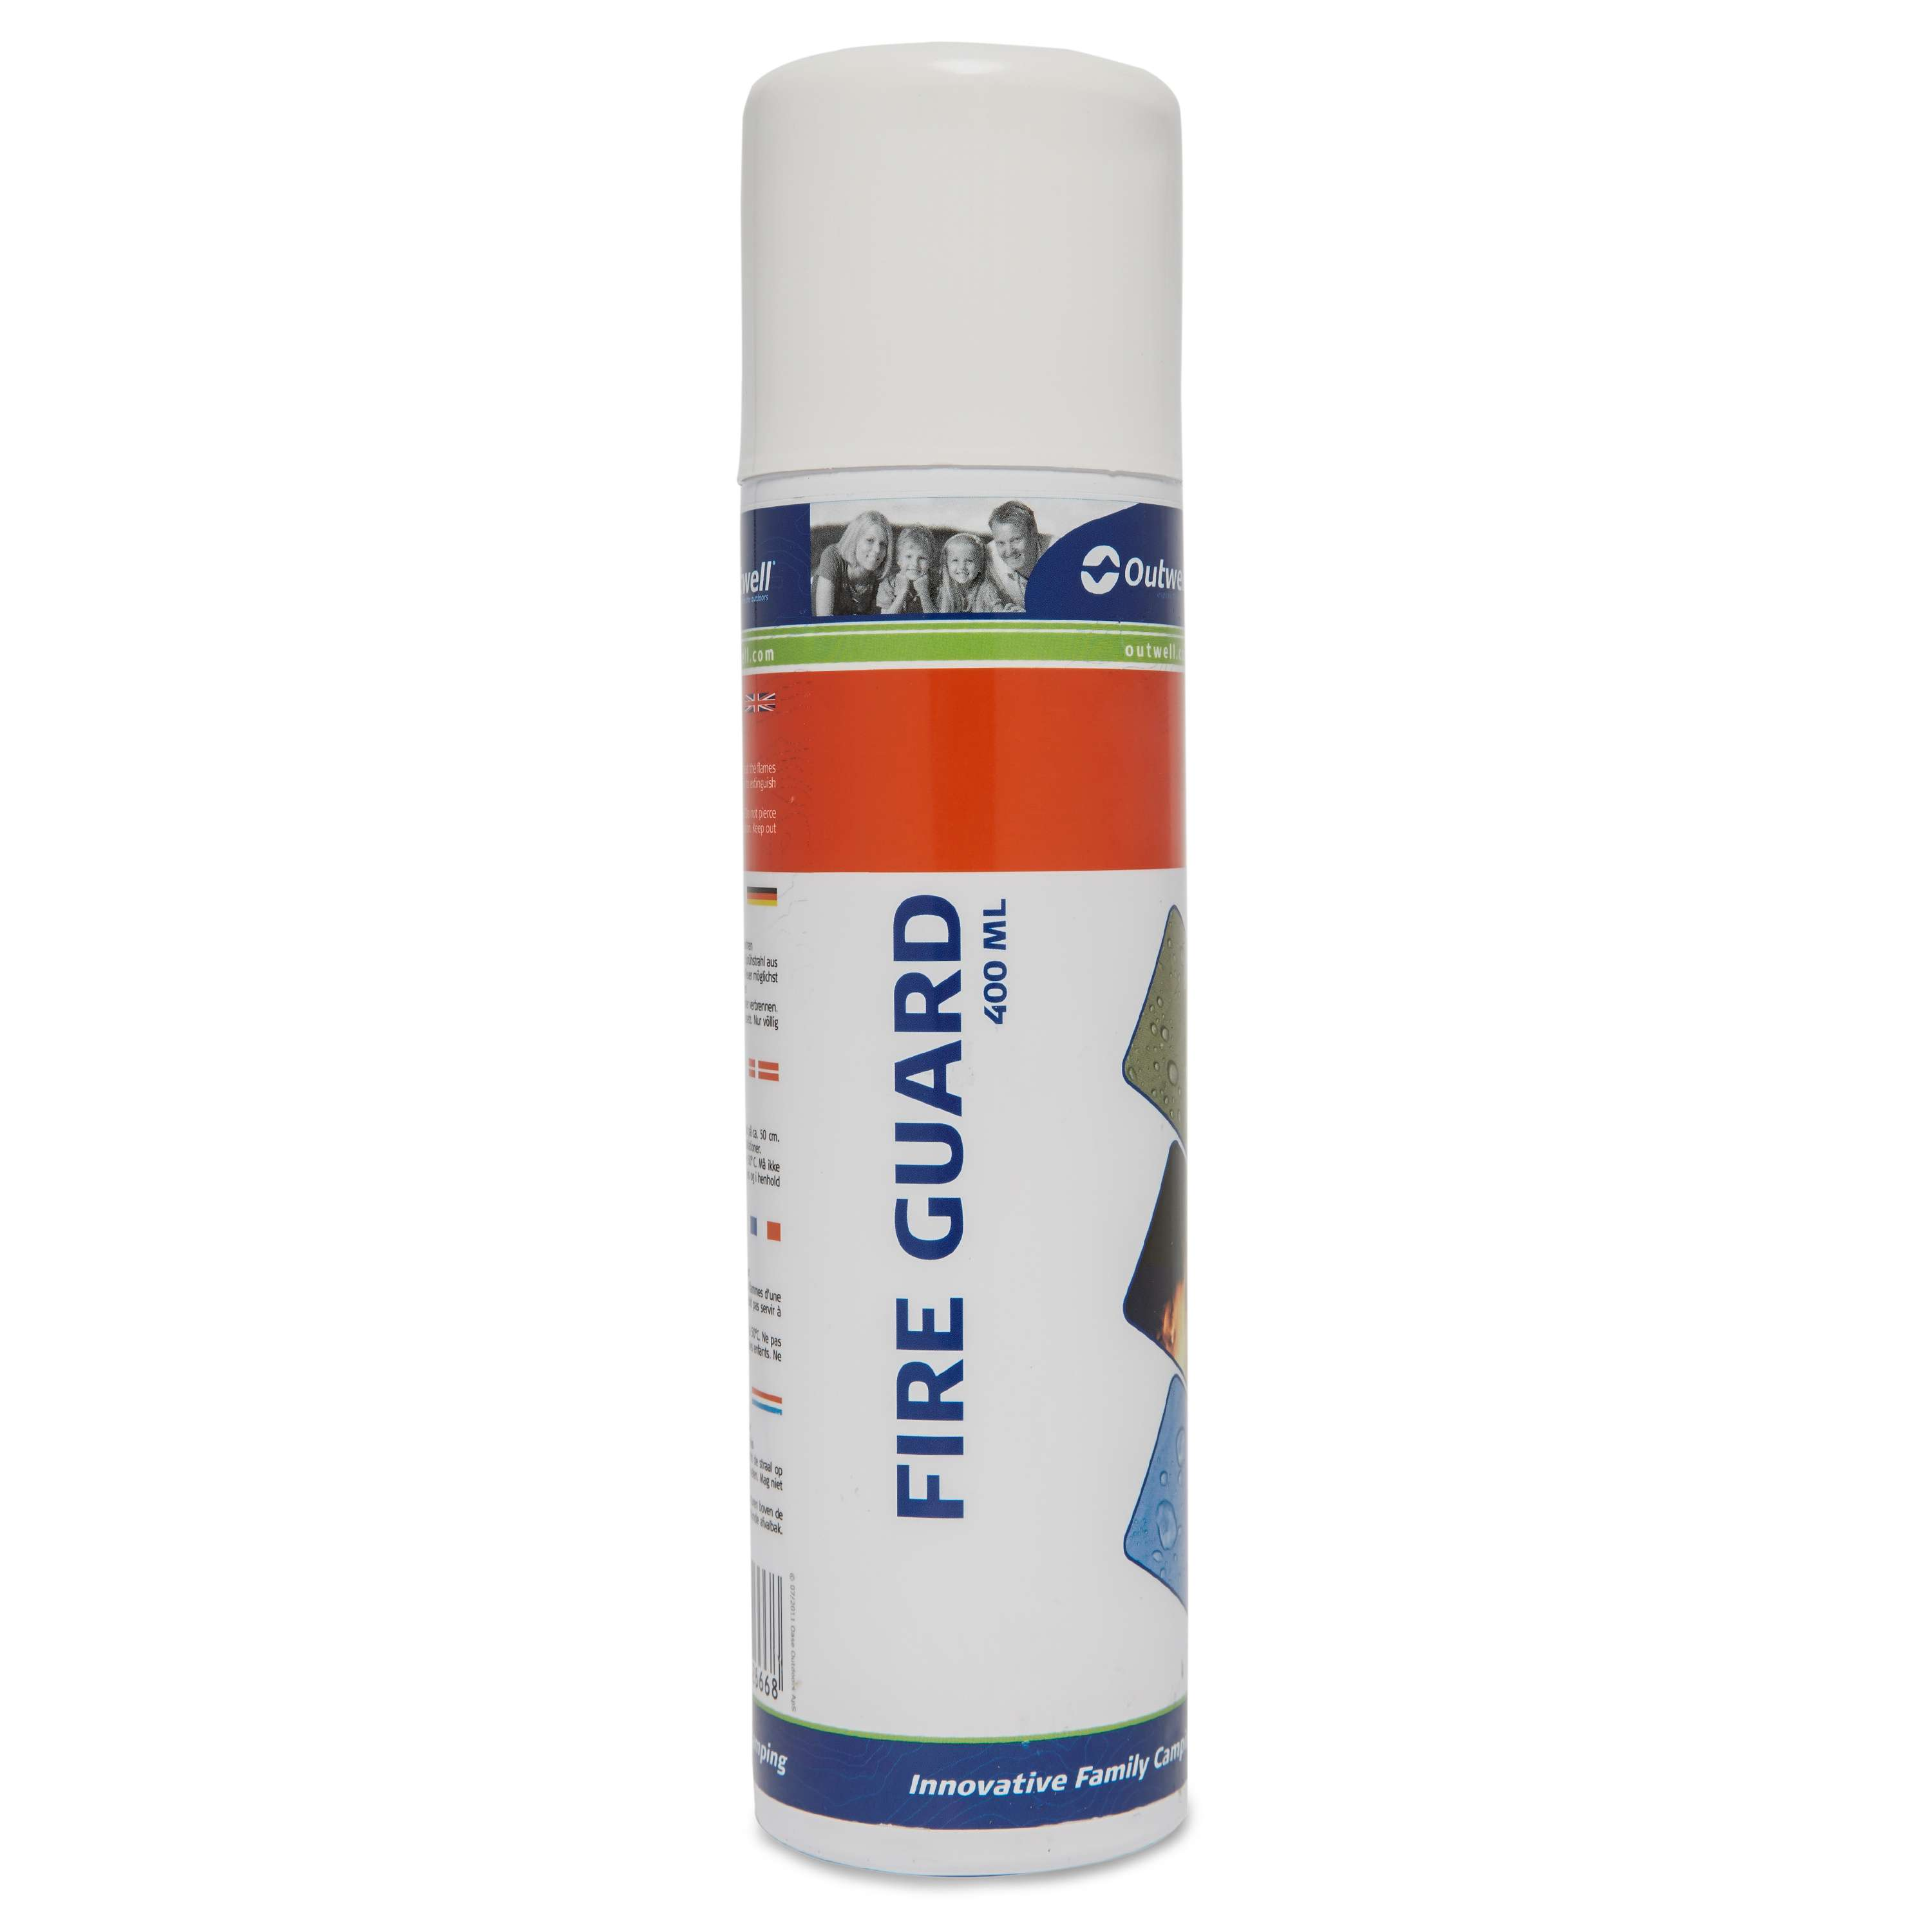 OUTWELL Fire Guard Fire Extinguisher